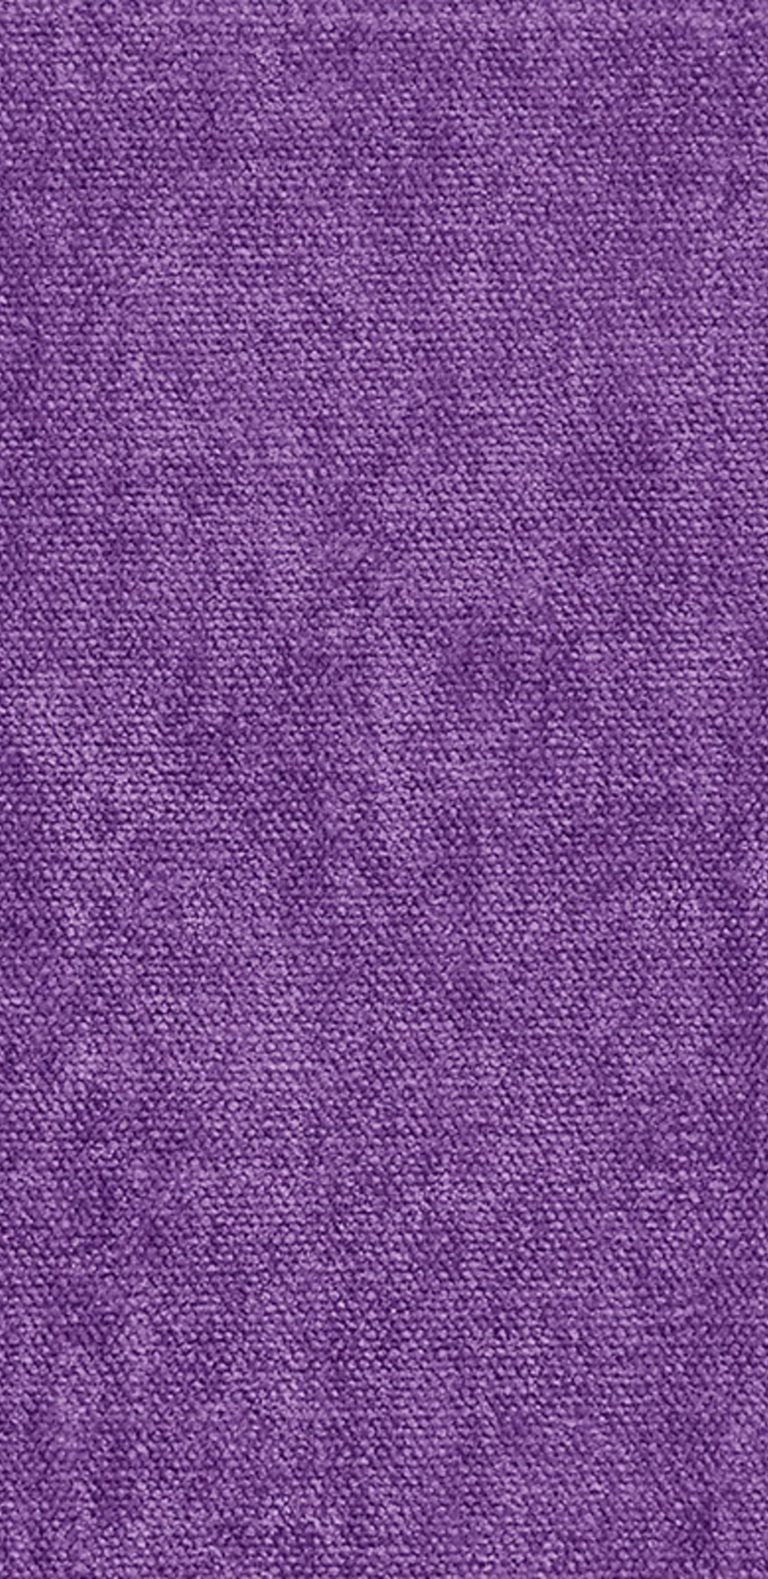 lavender wallpaper 2